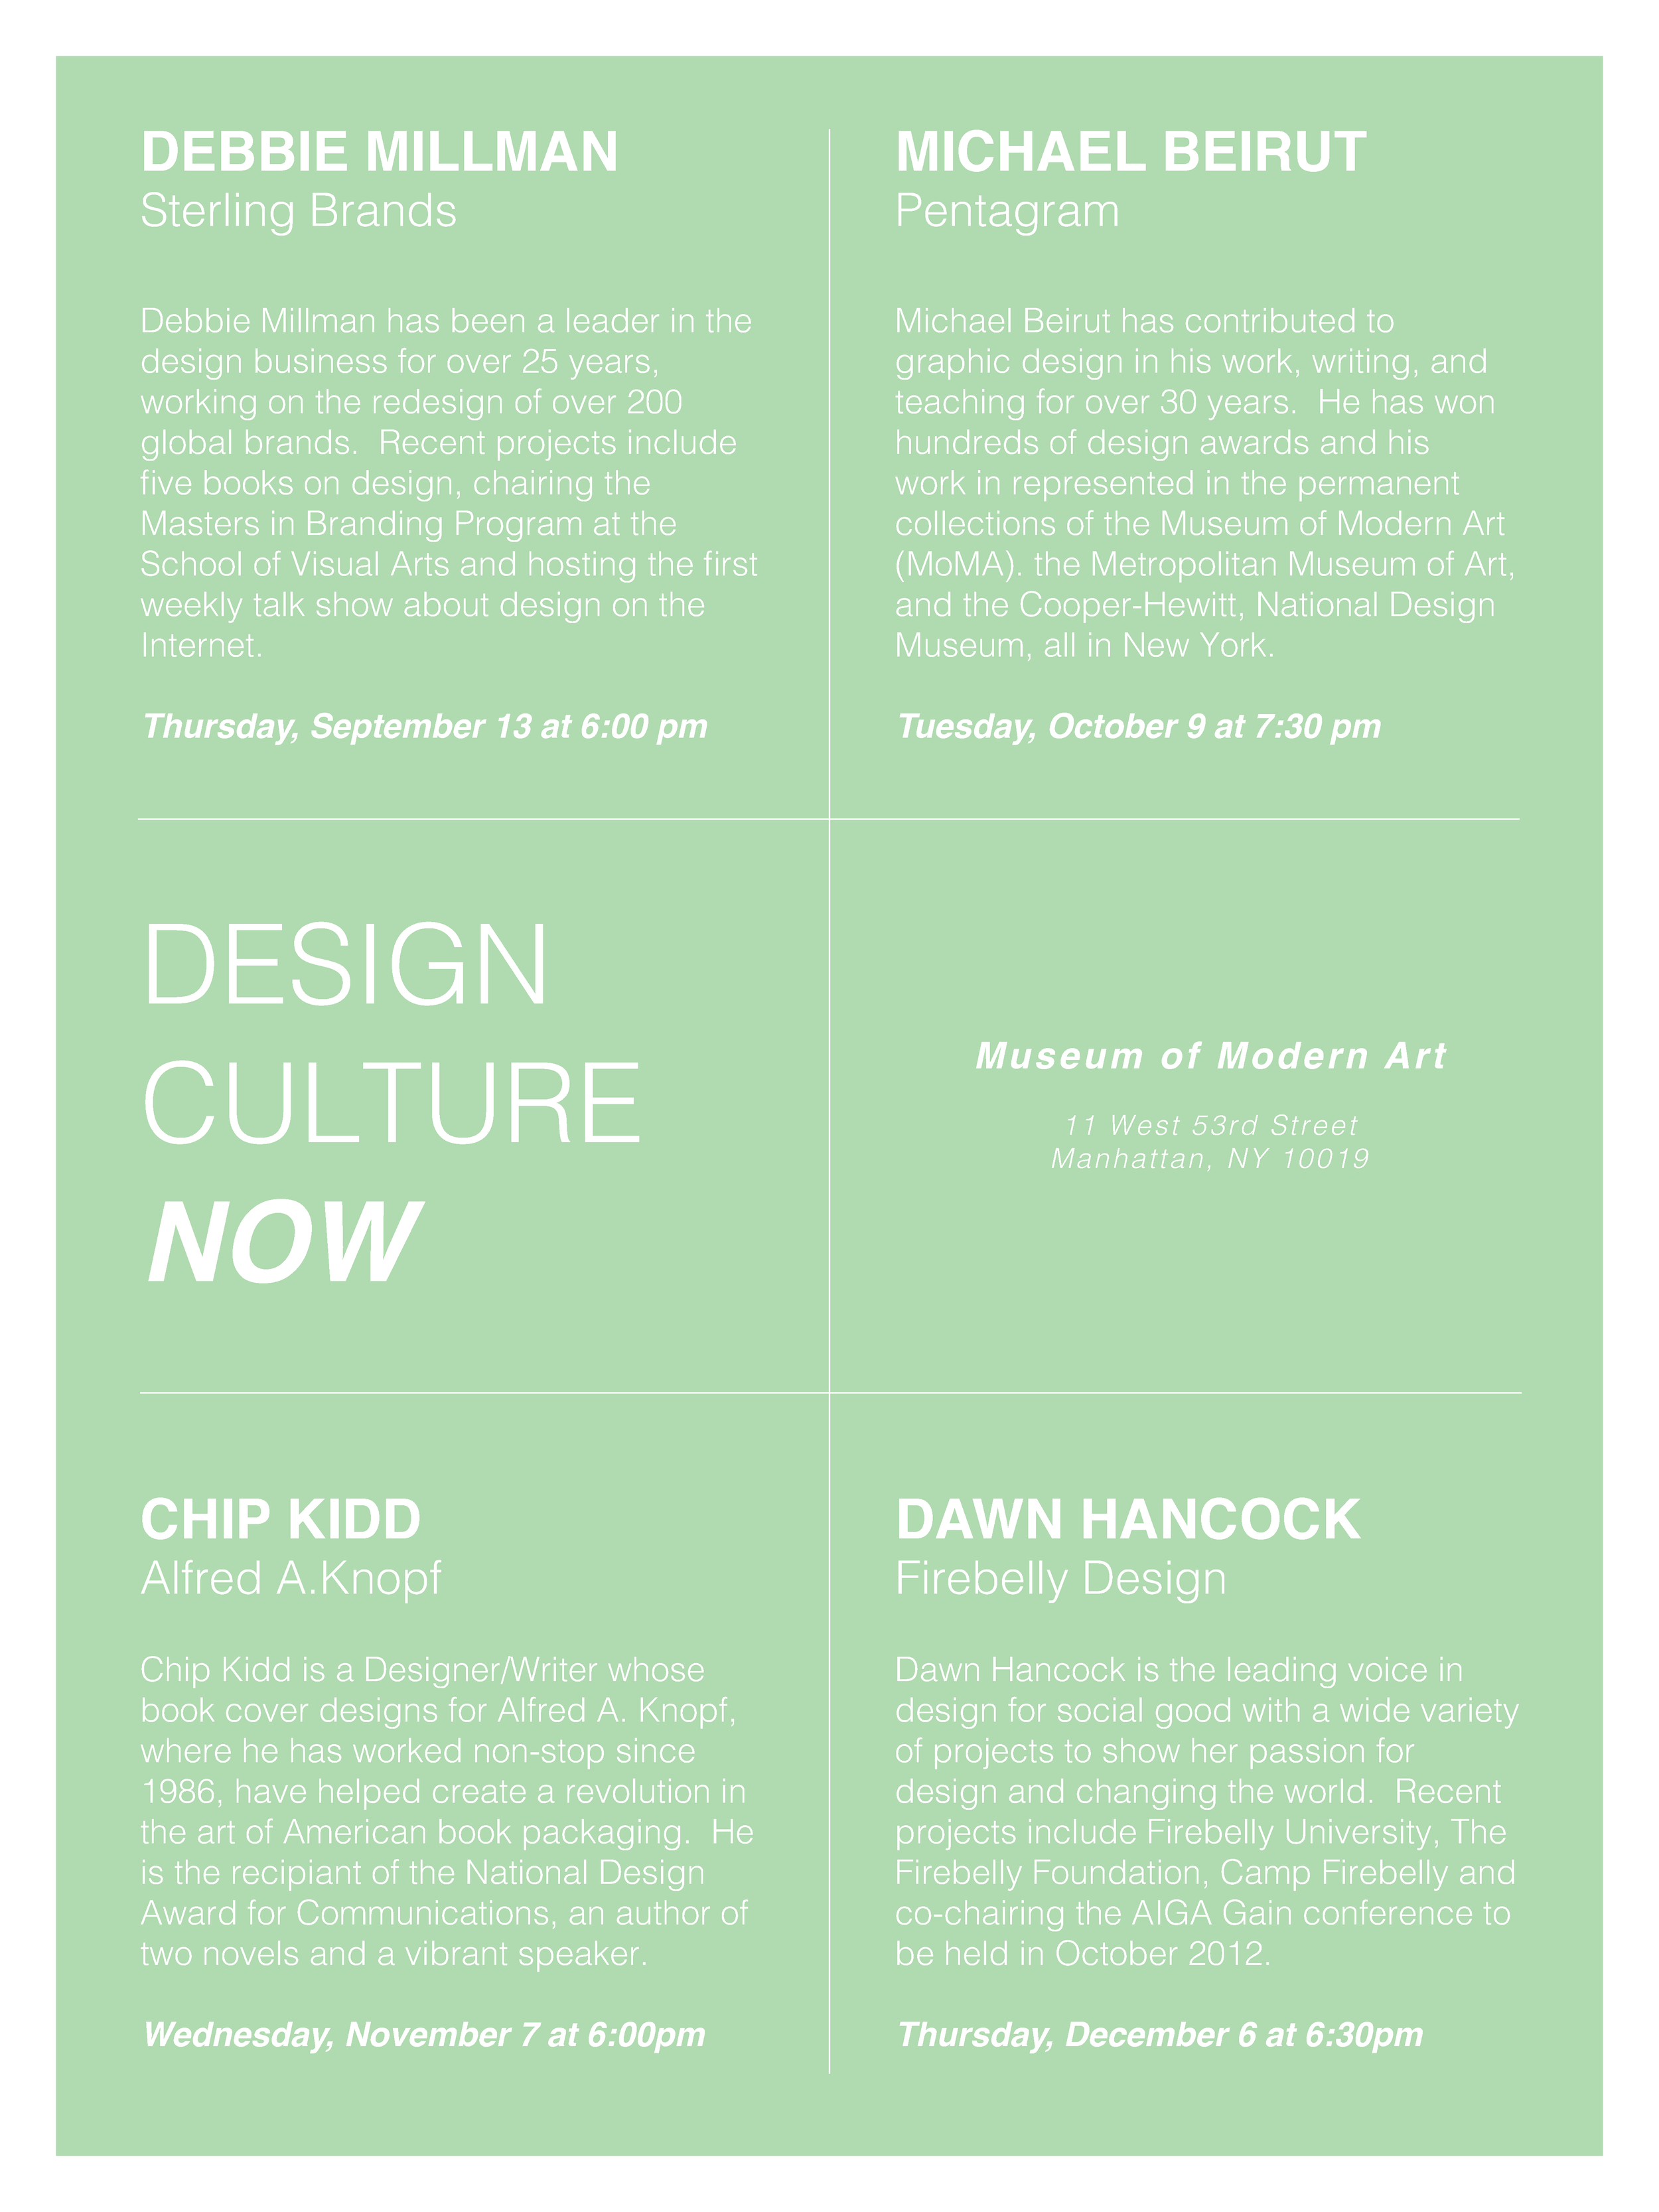 MoMA Poster (3)3.png